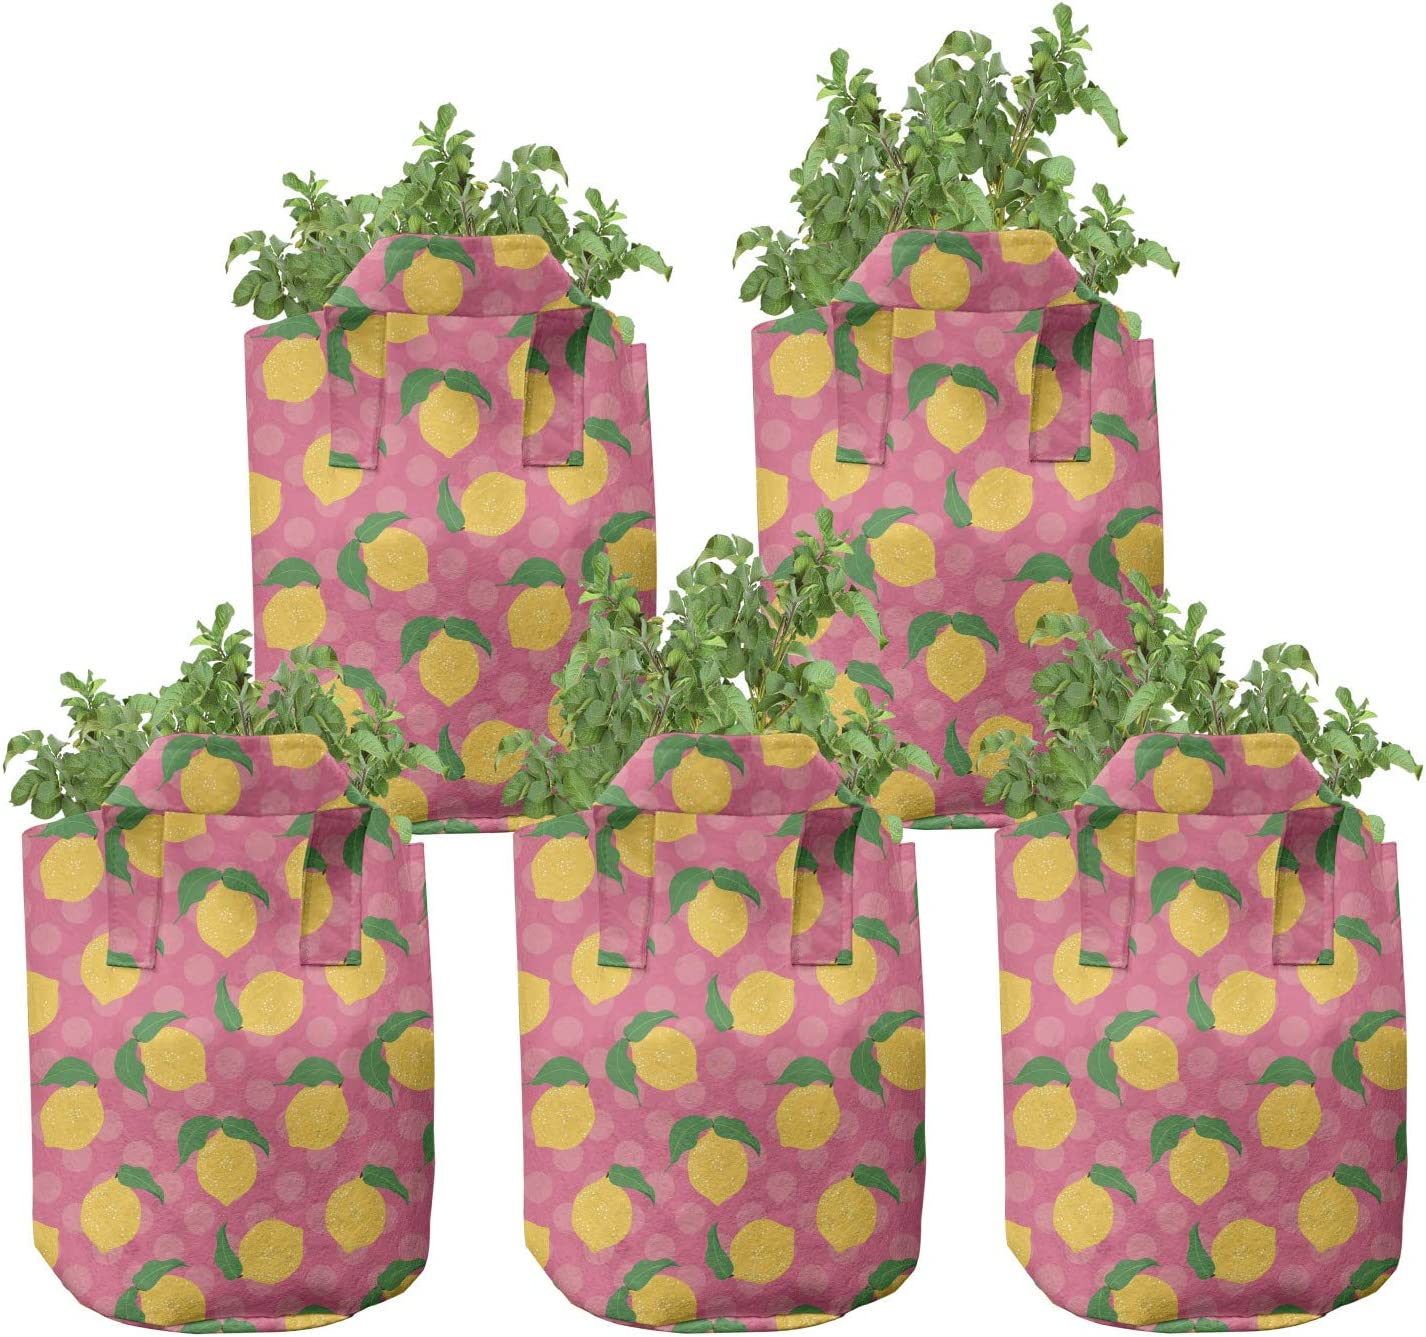 Ambesonne Lemon Grow Bags Max 57% OFF 5-Pack Dots online shop Lemons Polka with Leaves